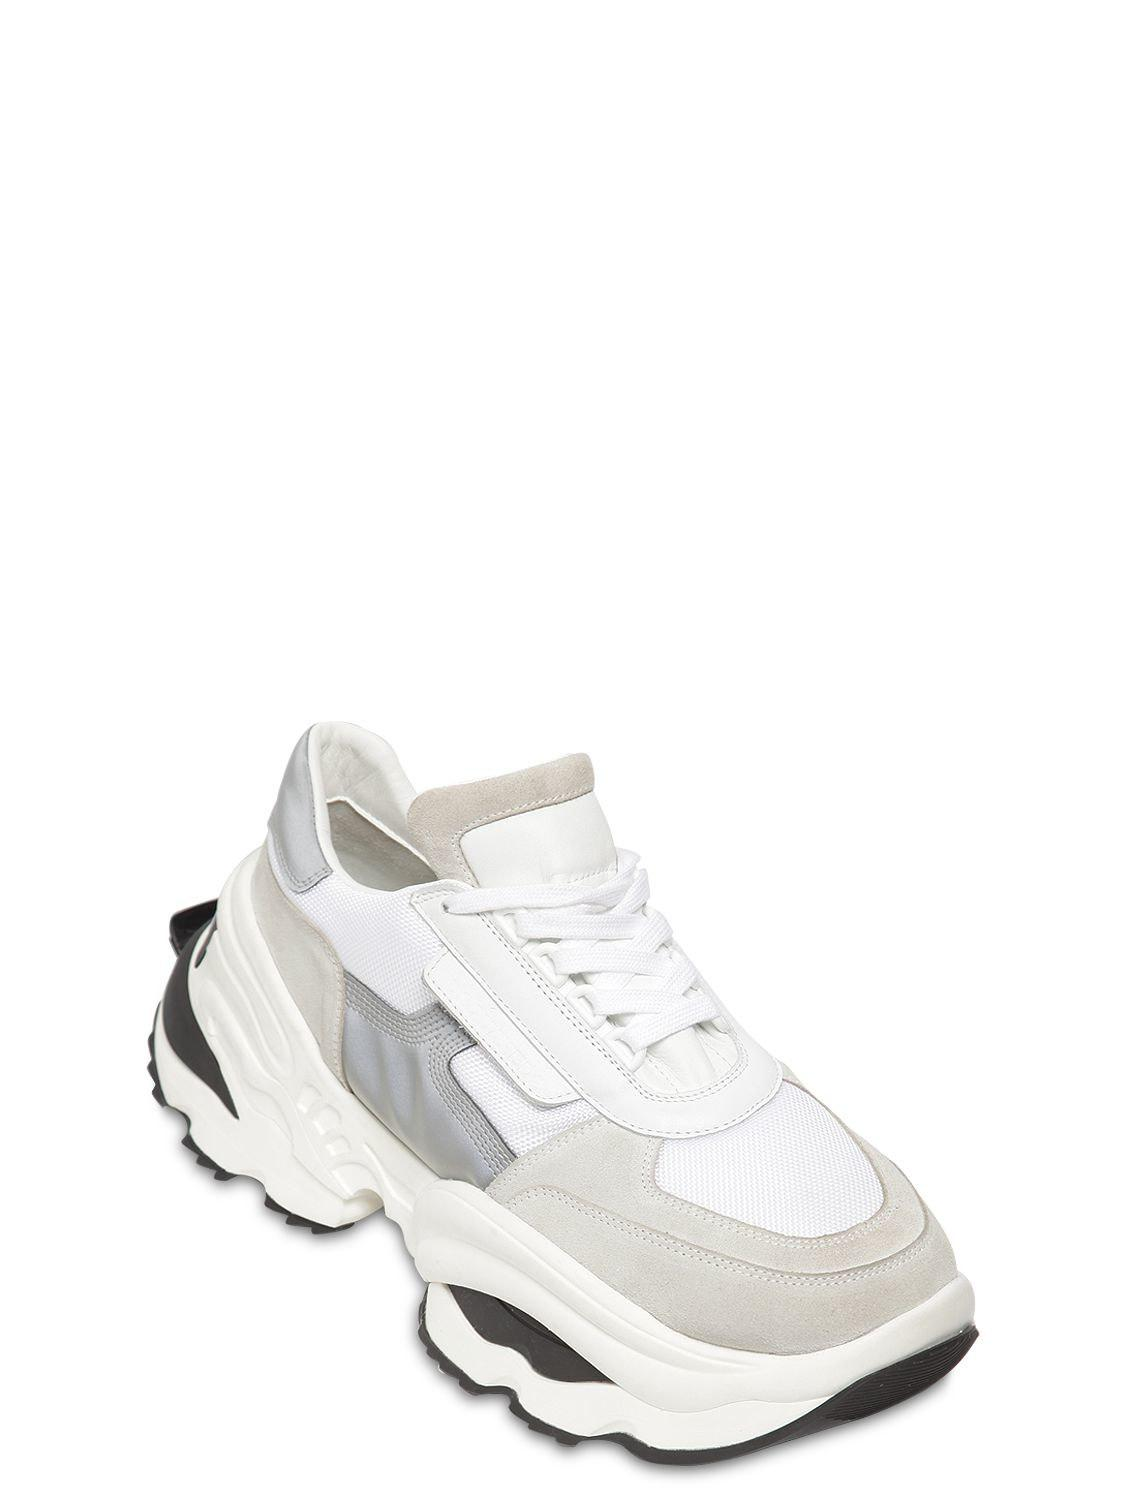 31c38e8fde6b01 Lyst - DSquared² The Giant Hike Chunky Leather Sneakers in White for Men